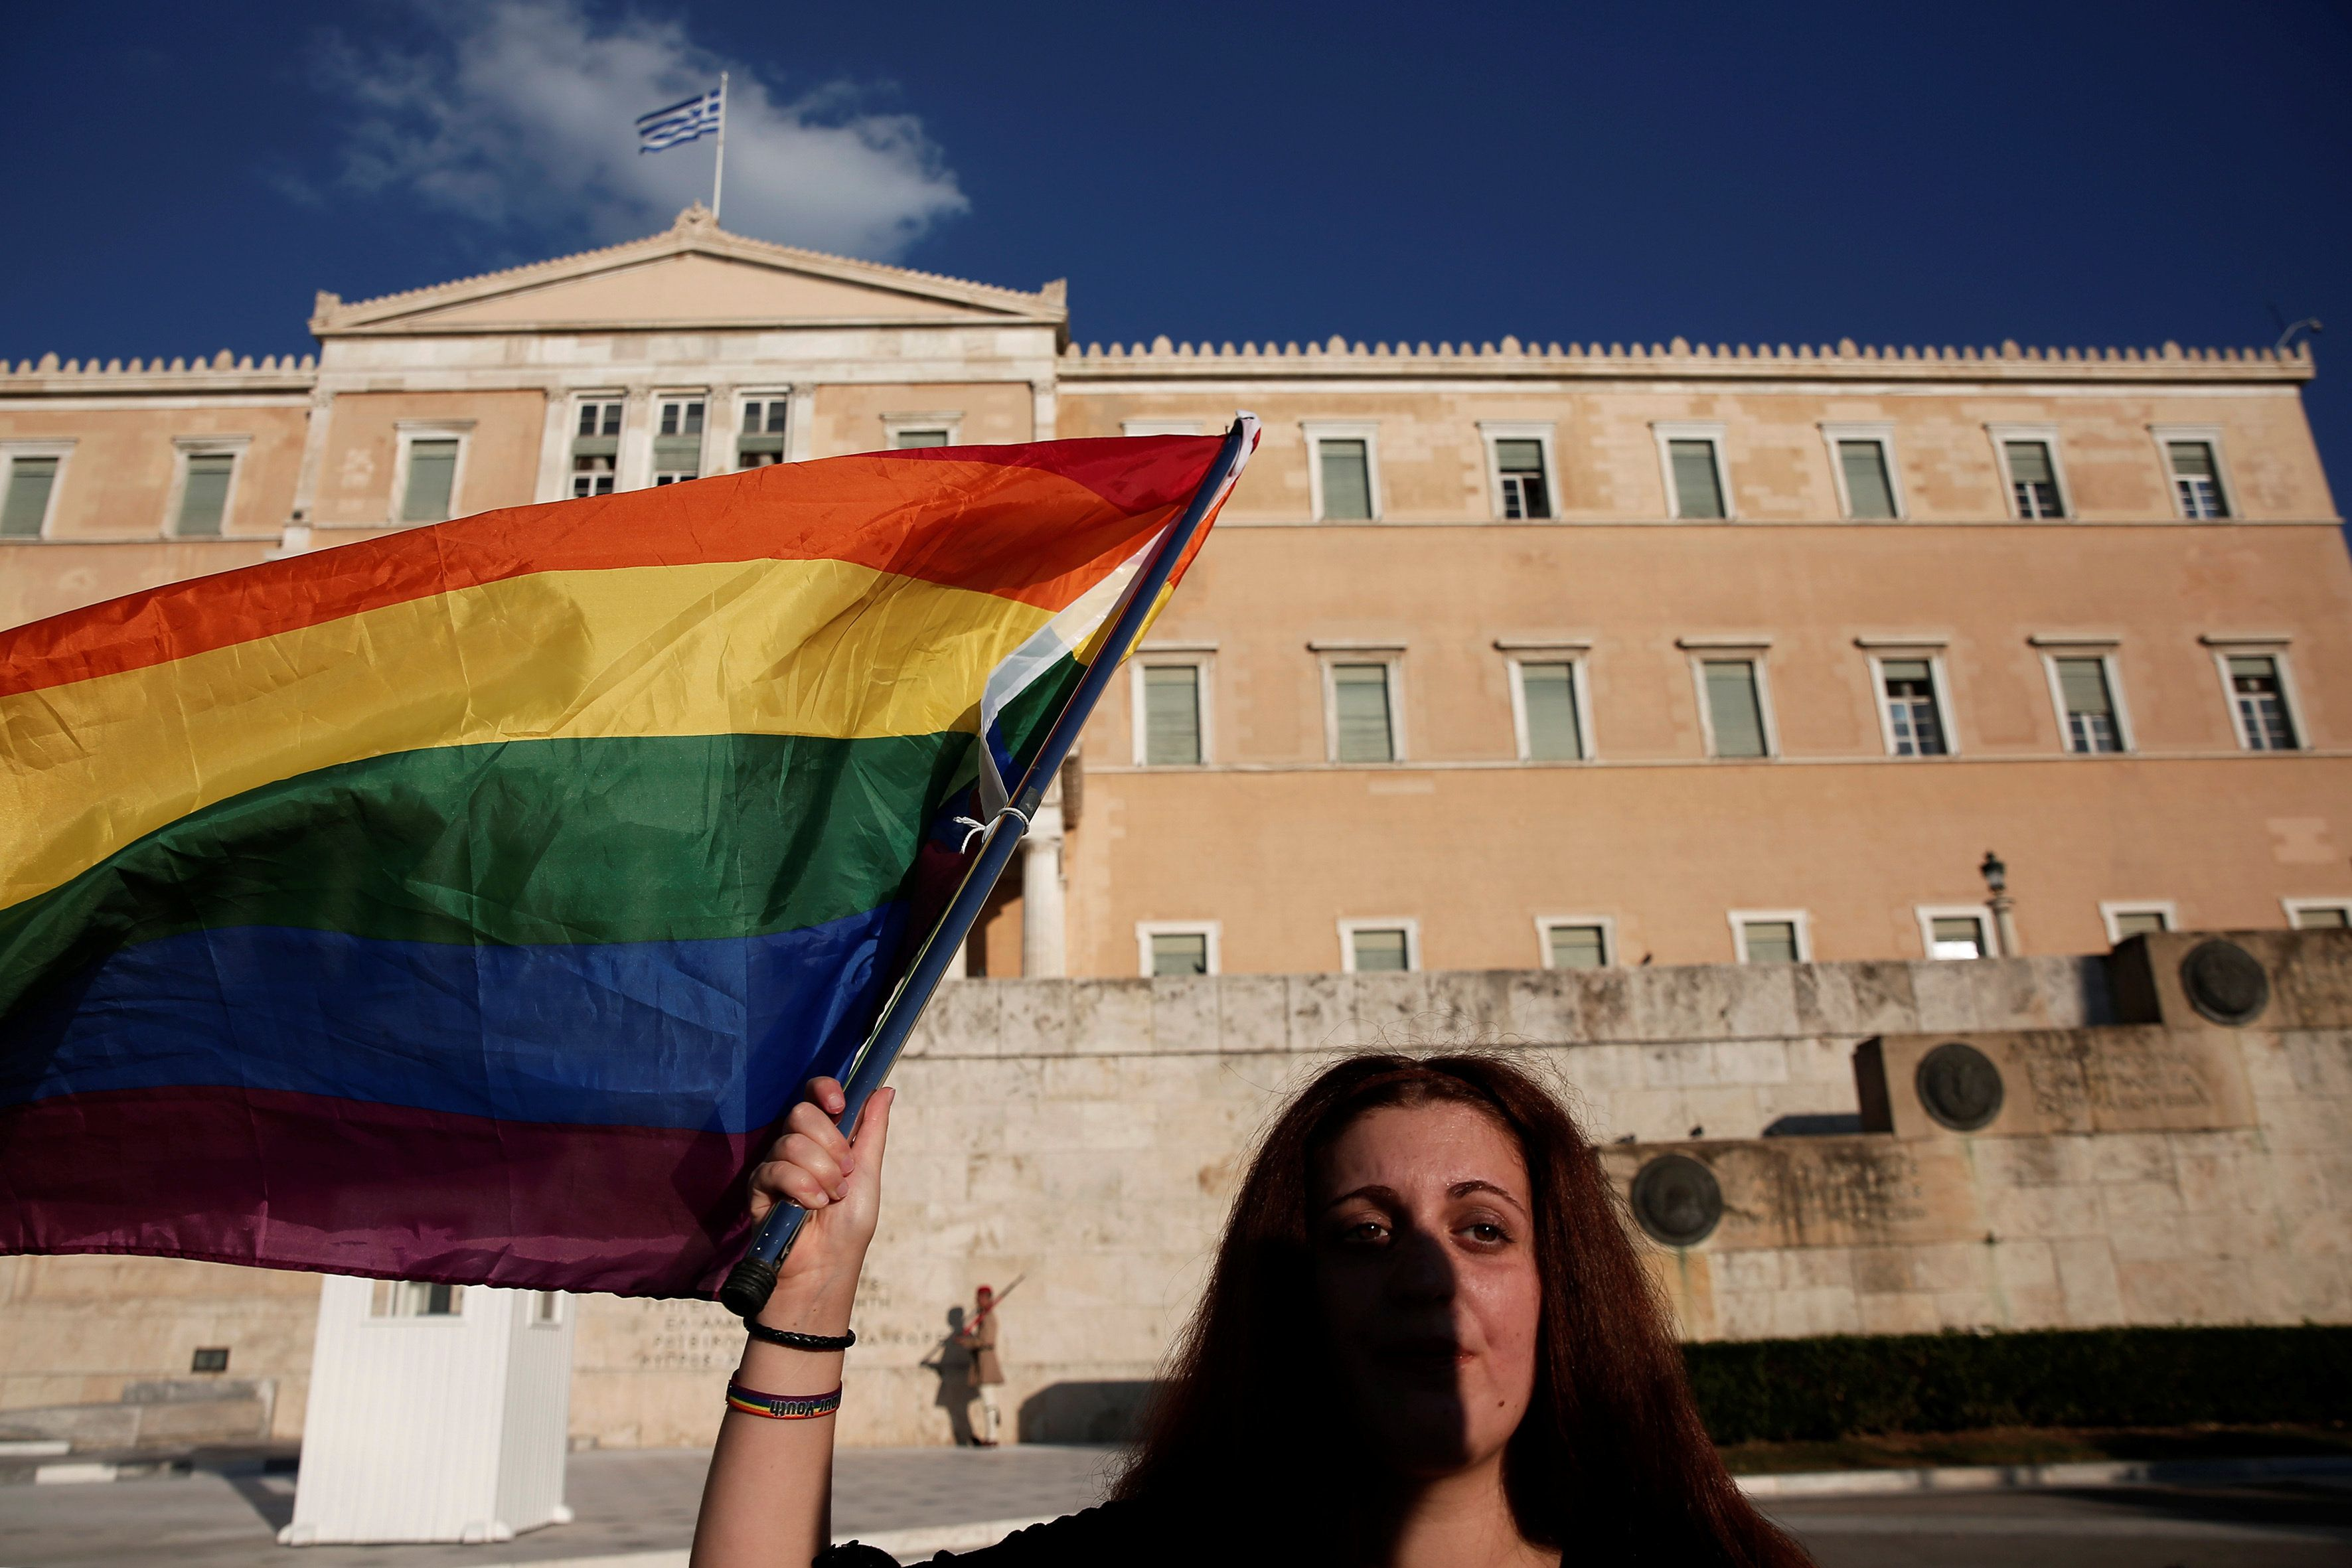 Greece Passes Law Making It Easier For Citizens To Change Gender On Official Documents